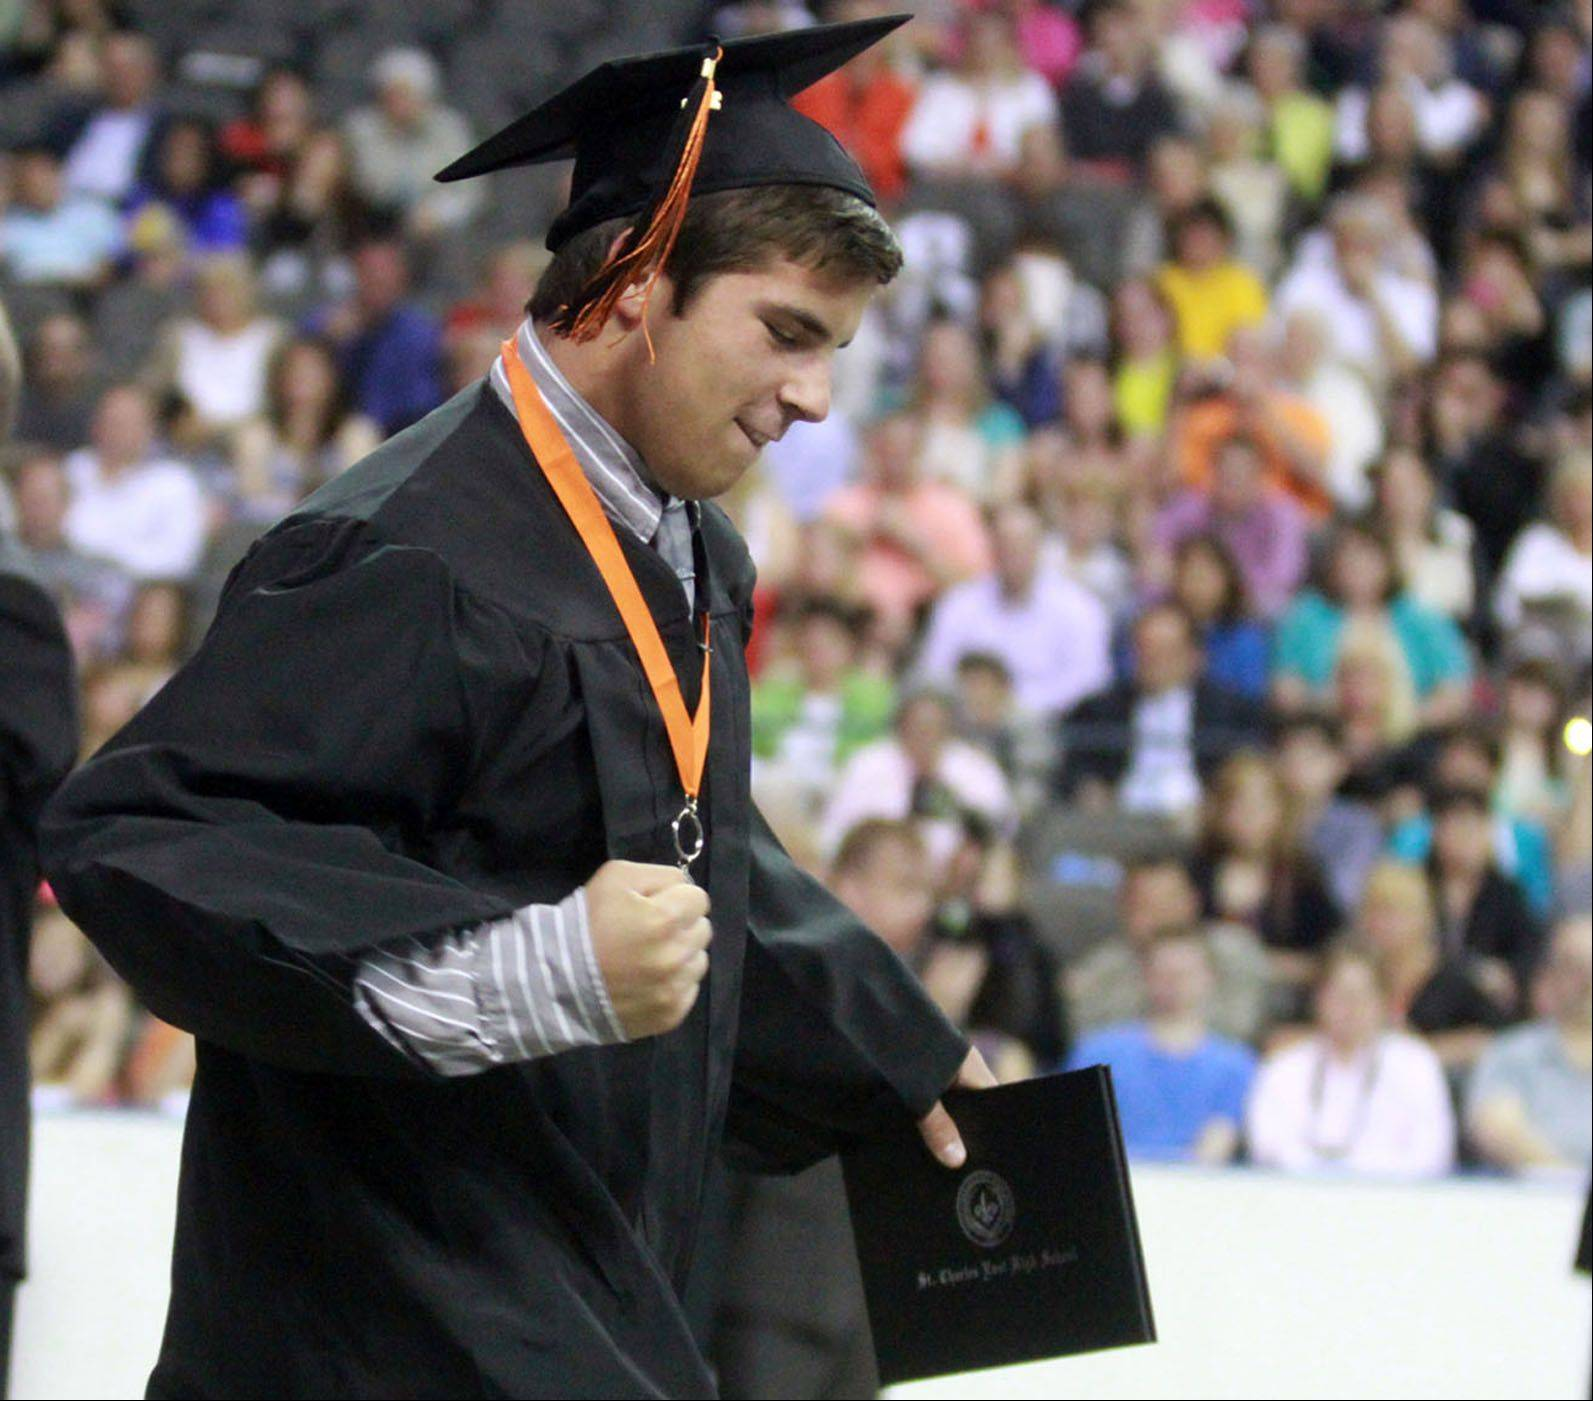 St. Charles East High School graduate Sam Malone celebrates receiving his diploma as he walks offstage during the school's commencement ceremony at the Sears Centre in Hoffman Estates on Sunday, May 26, 2013.